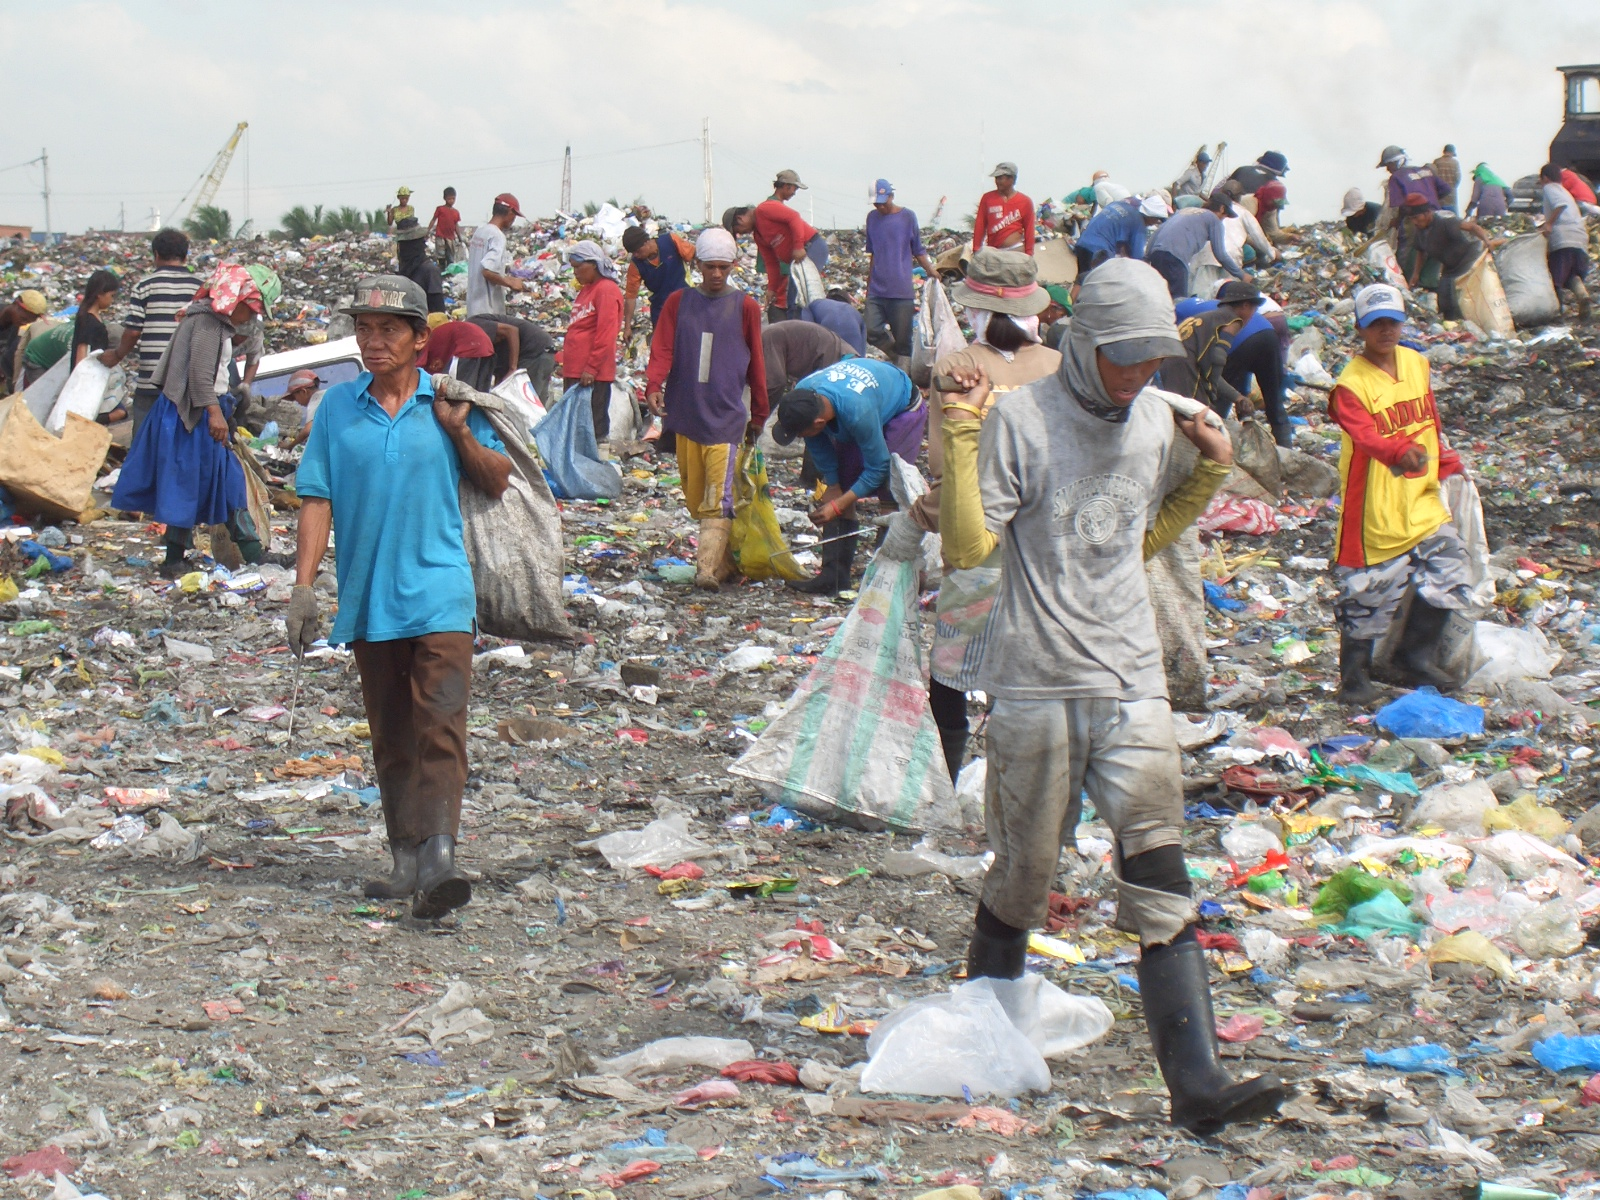 What are some subtopics i could talk about for recycling?